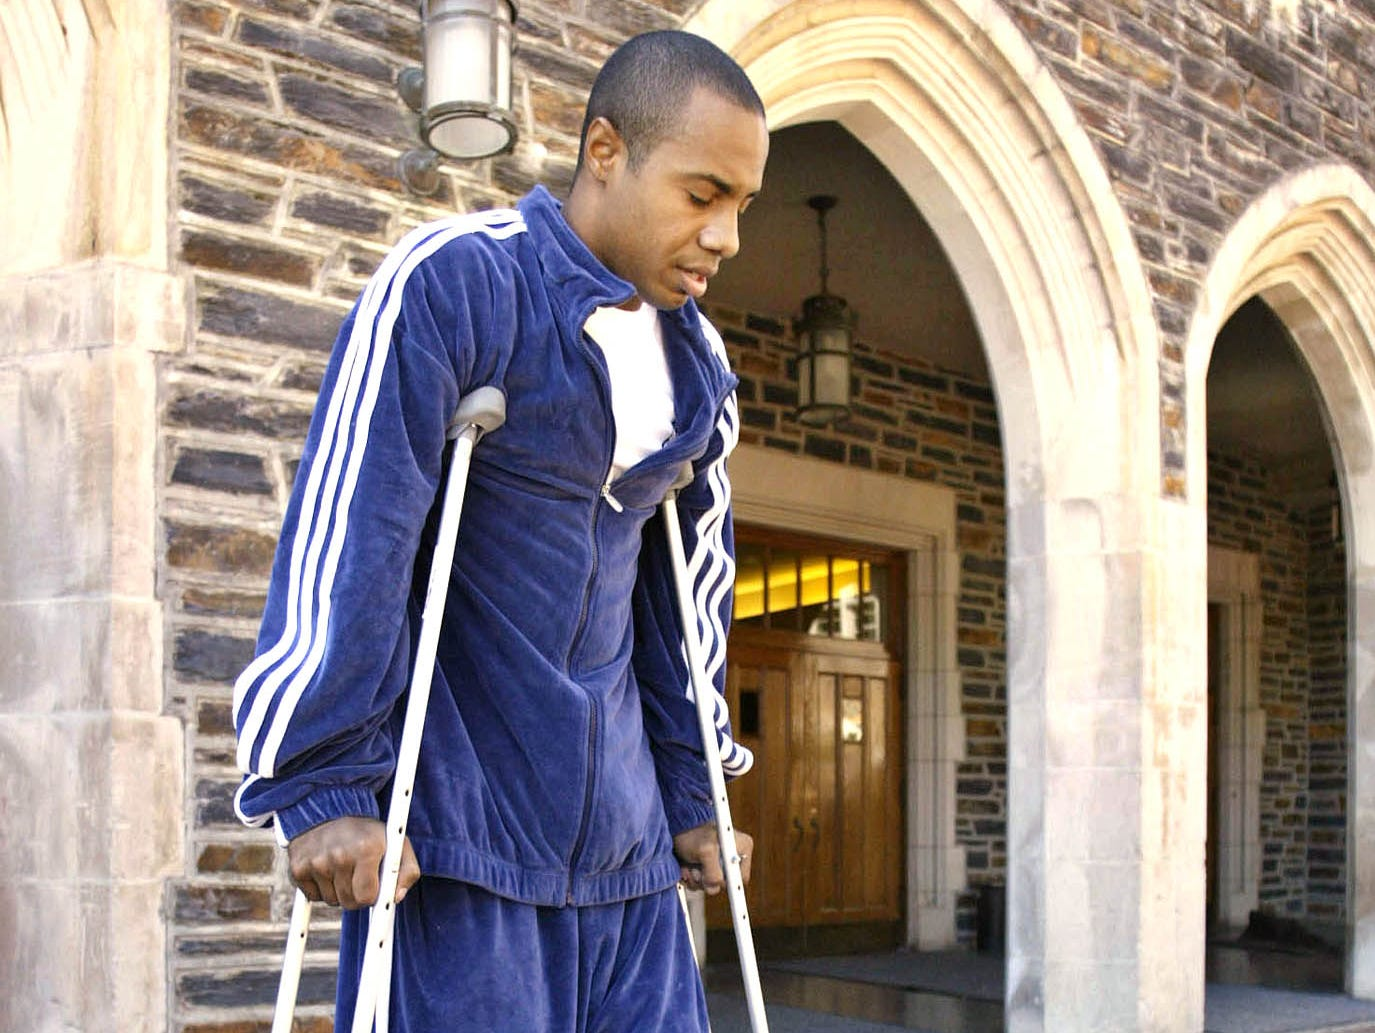 Jay Williams, Chicago Bulls basketball player and former Duke All-American, arrives at Duke's Cameron Indoor Stadium, Monday, Sept. 29, 2003, in Durham, N.C., for an interview. Williams was hurt earlier this year in a motorcycle accident.